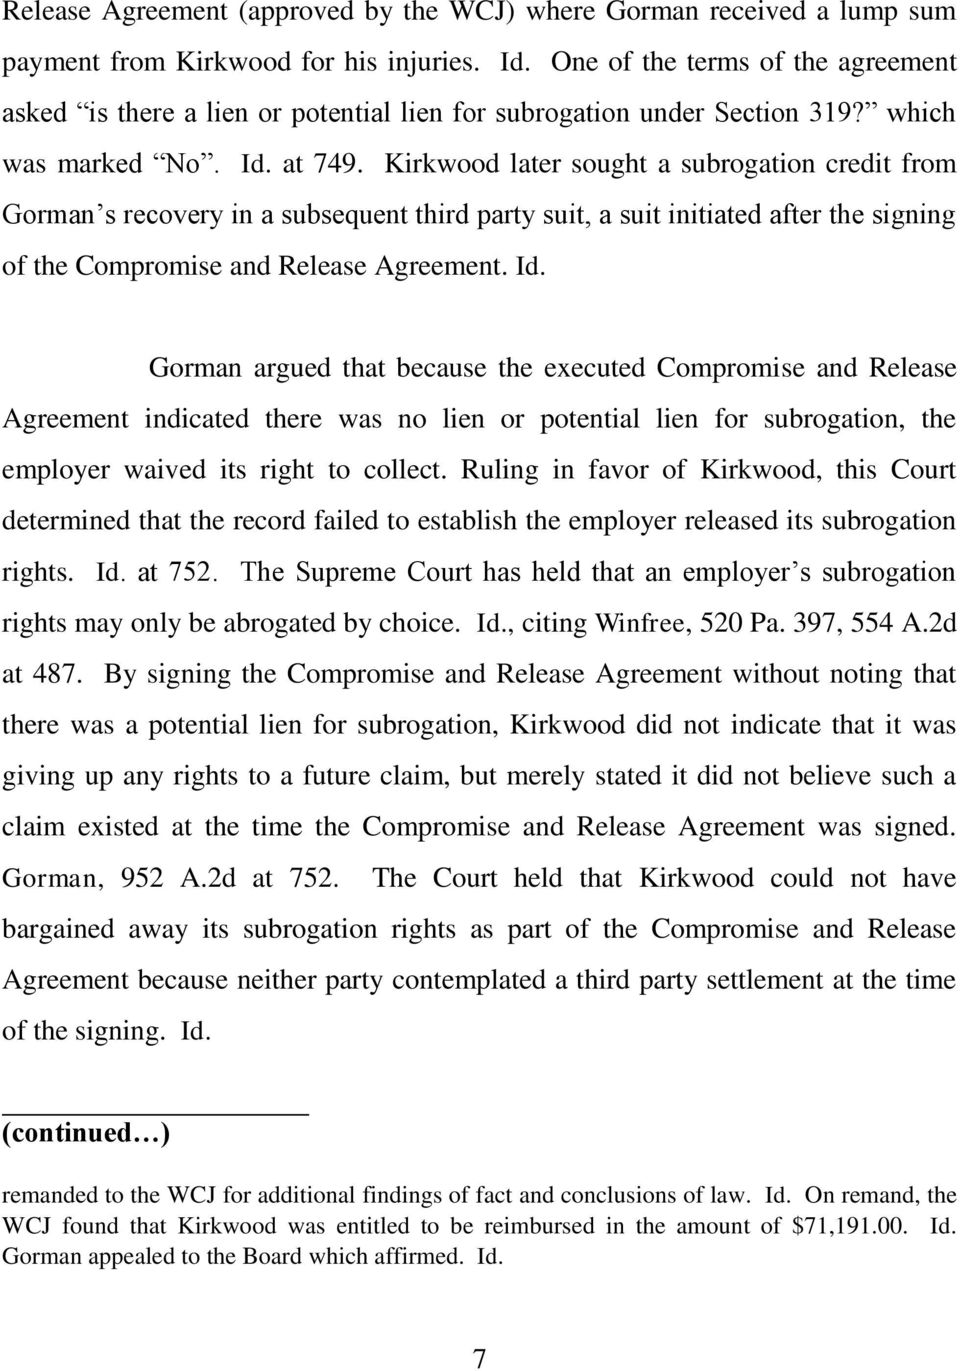 Kirkwood later sought a subrogation credit from Gorman s recovery in a subsequent third party suit, a suit initiated after the signing of the Compromise and Release Agreement. Id.